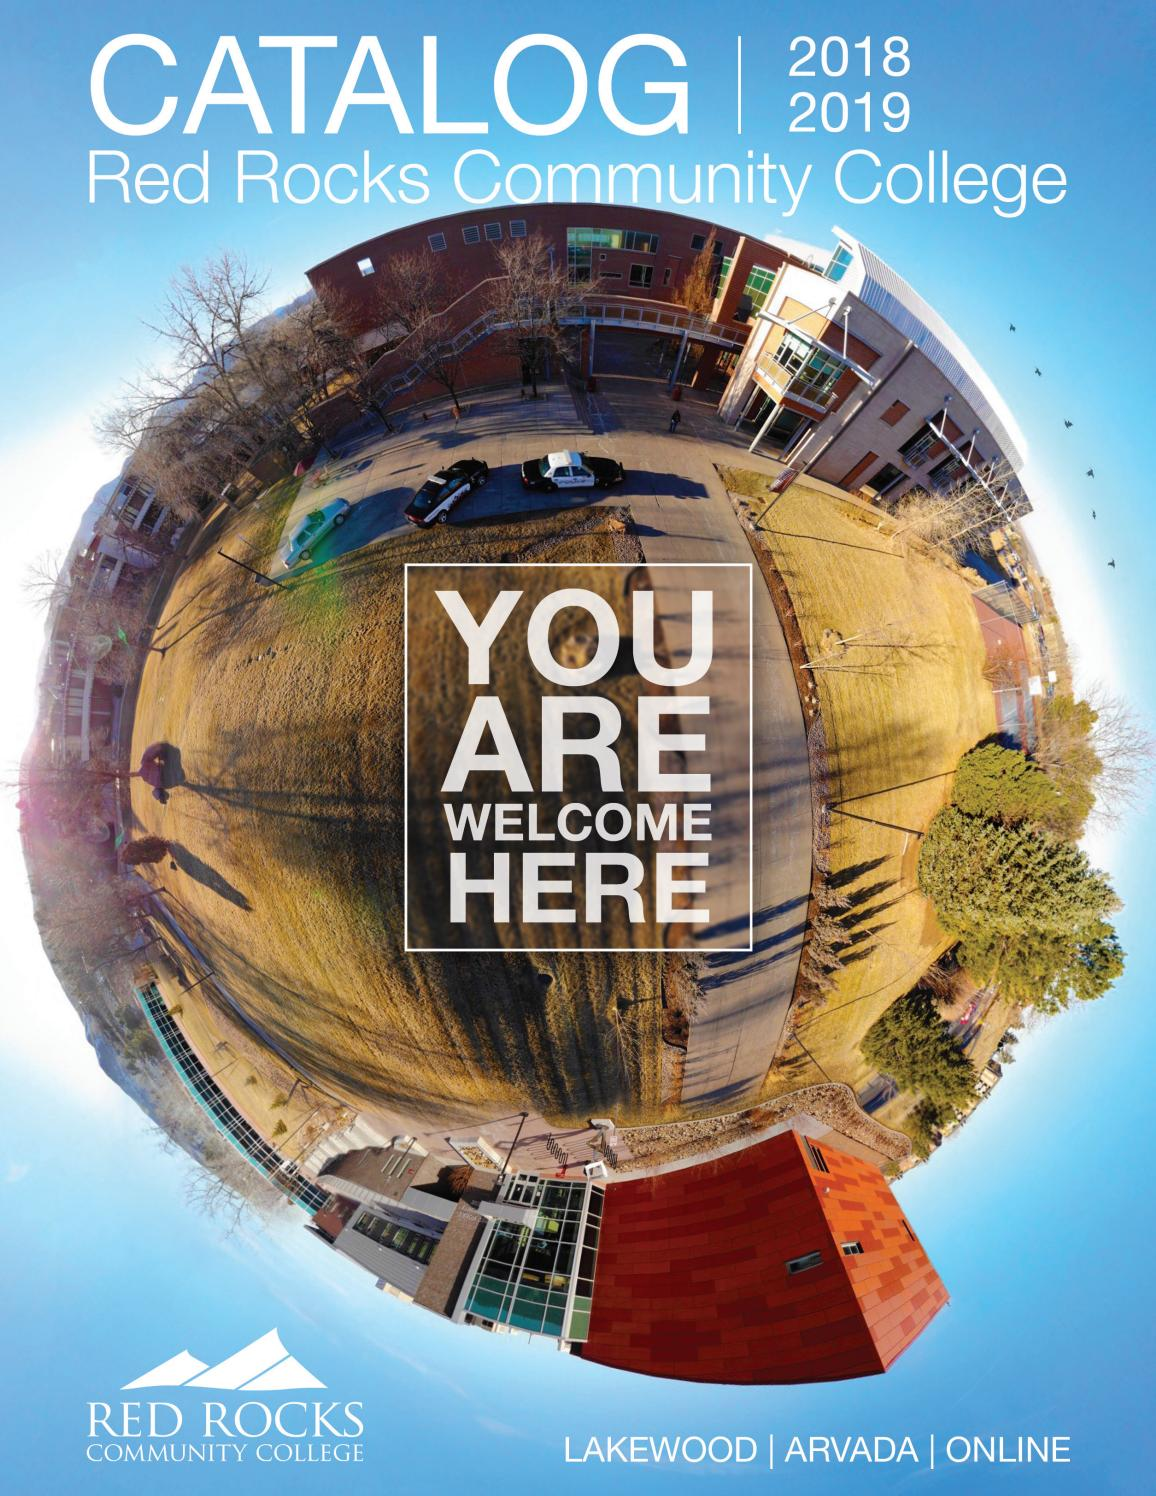 RRCC 18-19 Catalog by Red Rocks Community College - issuu